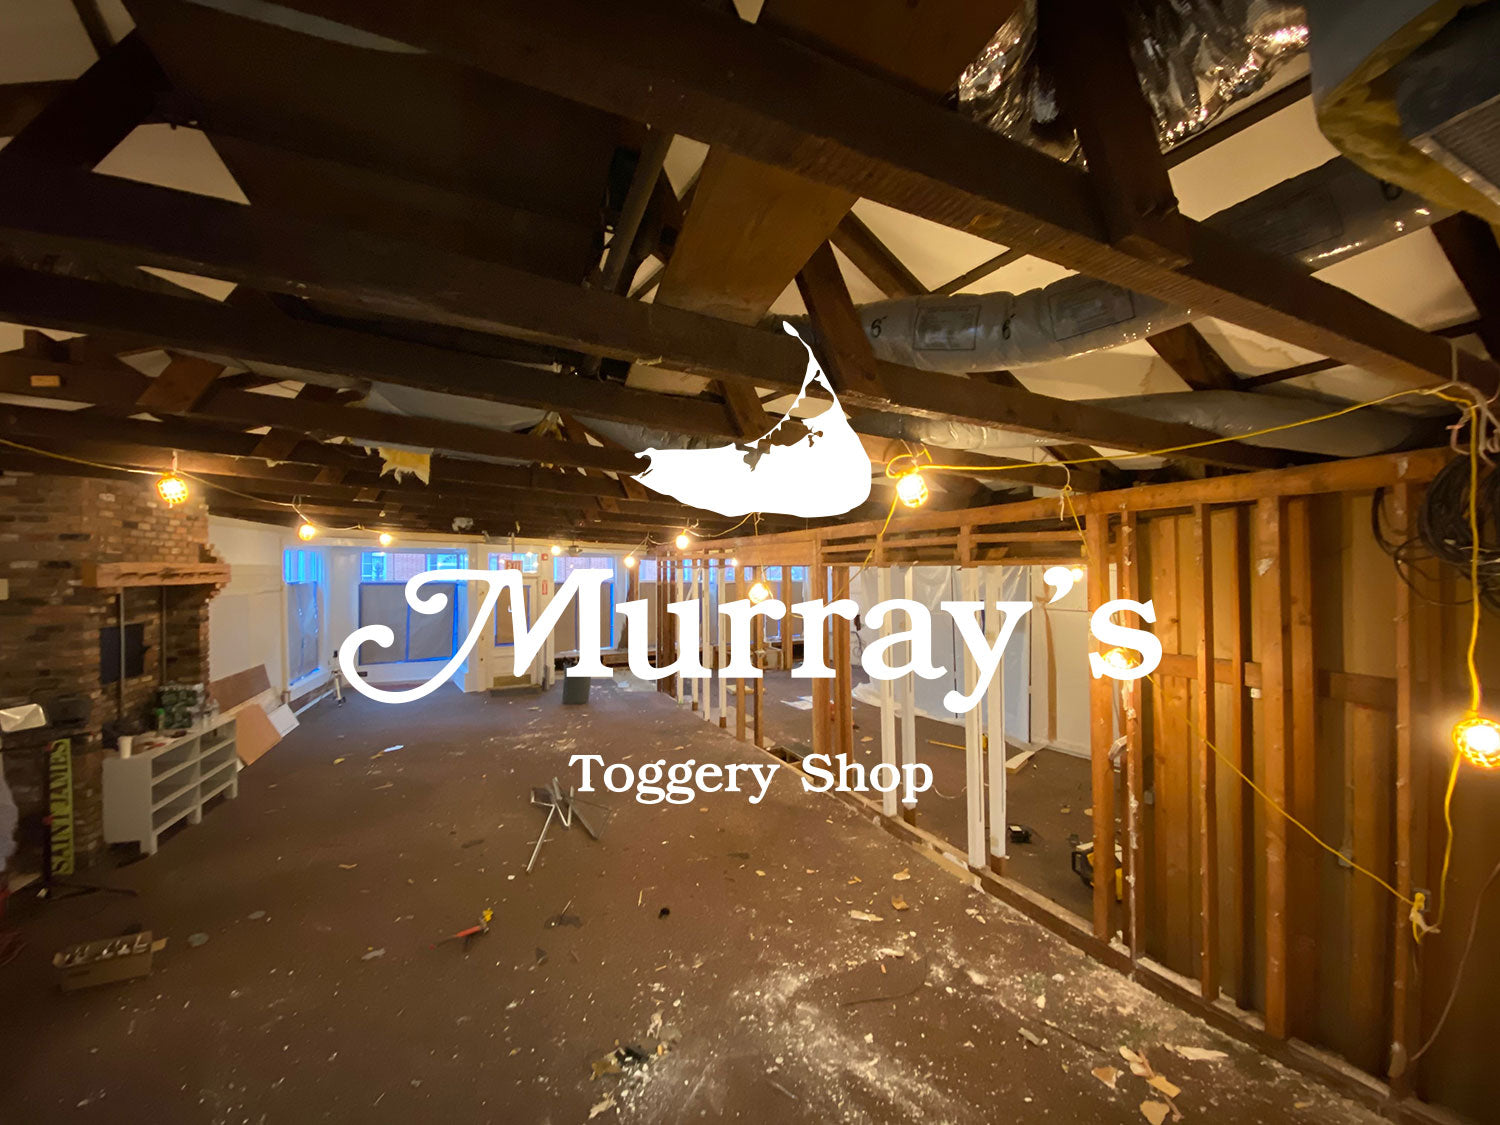 Building a Better Shopping Experience on Nantucket | Murray's Toggery Shop 2020 Renovation